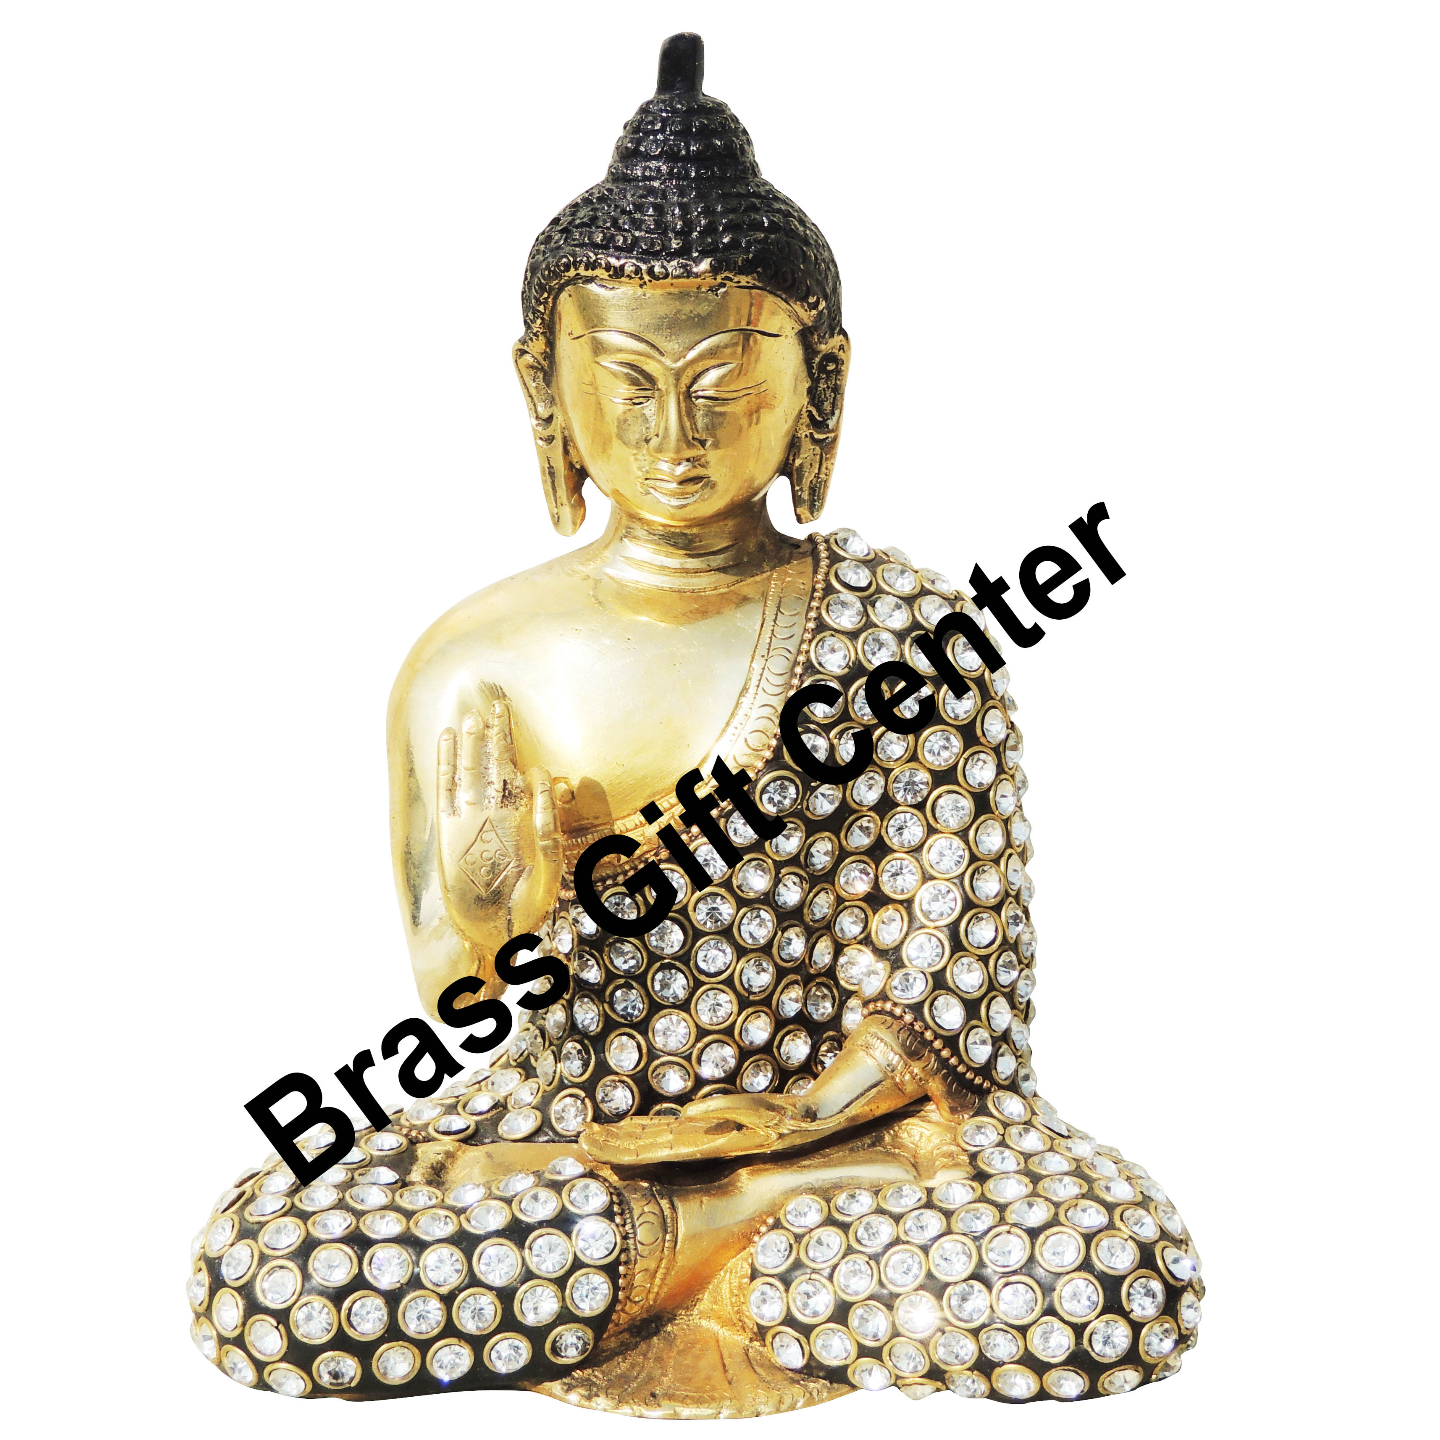 Brass Buddha studded with Turquoise Coral stone work - 62.87.8 Inch  BS909 A